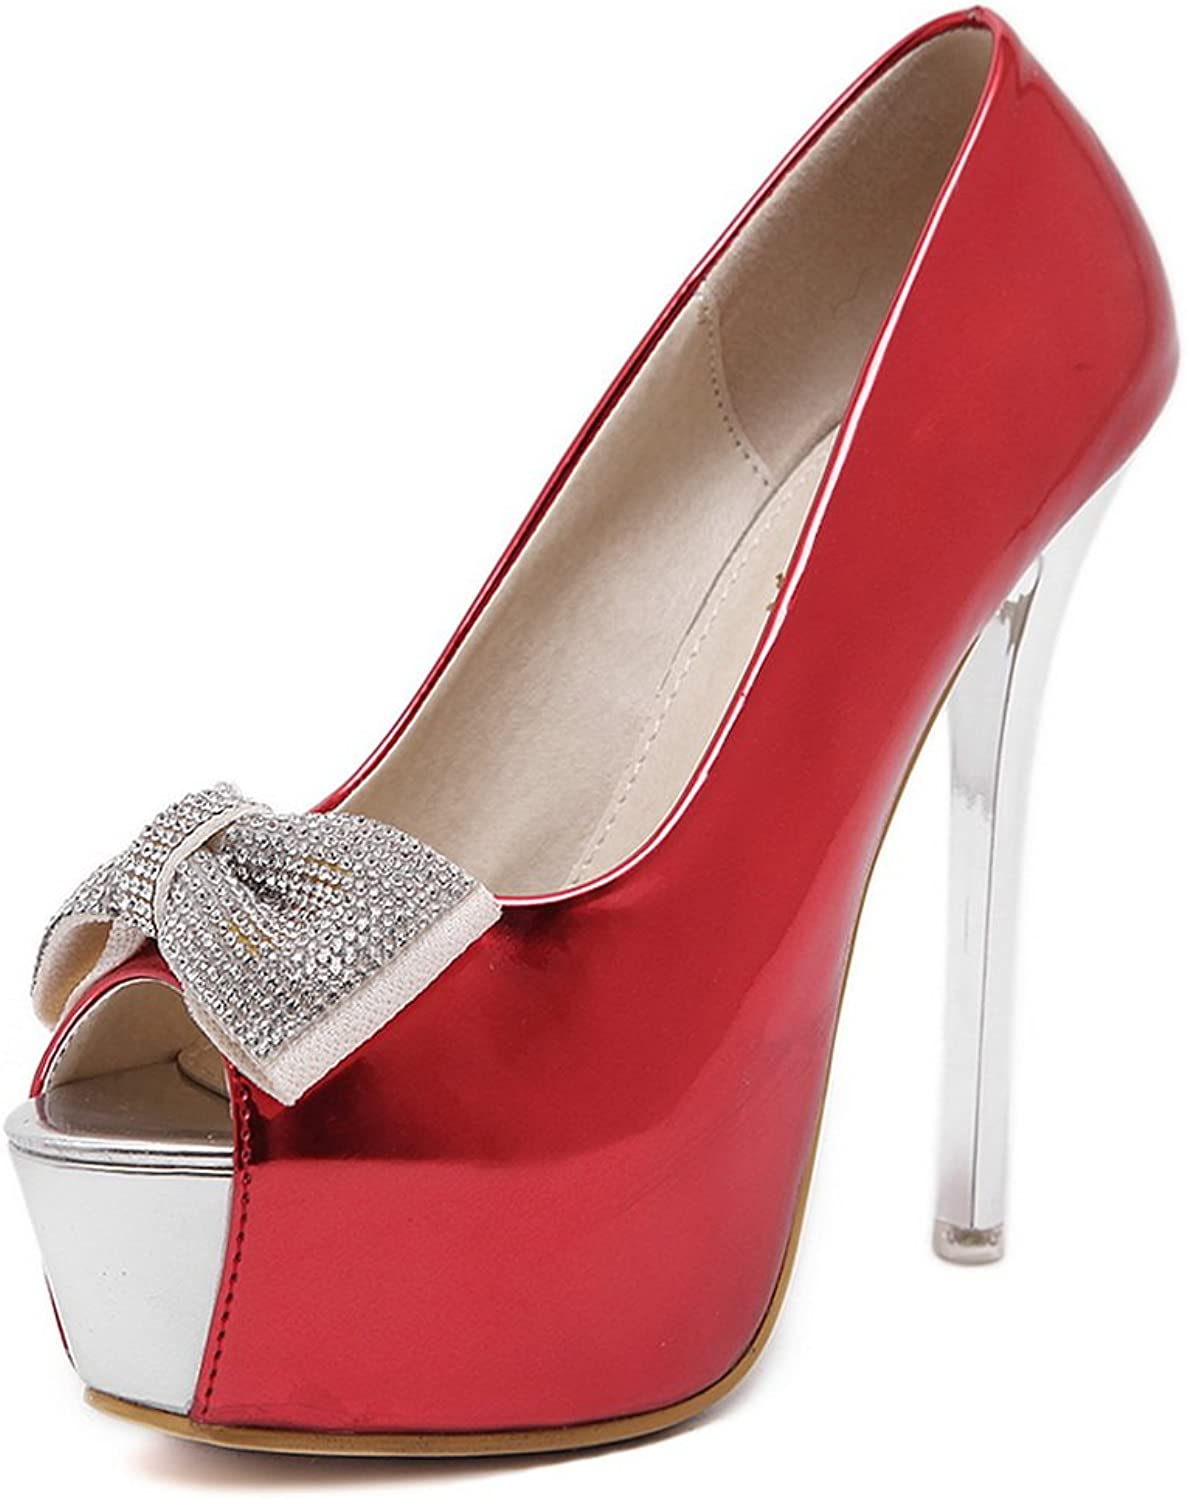 1TO9 Womens Bows Spikes Stilettos Peep-Toe Red Urethane Pumps shoes - 7.5 B(M) US